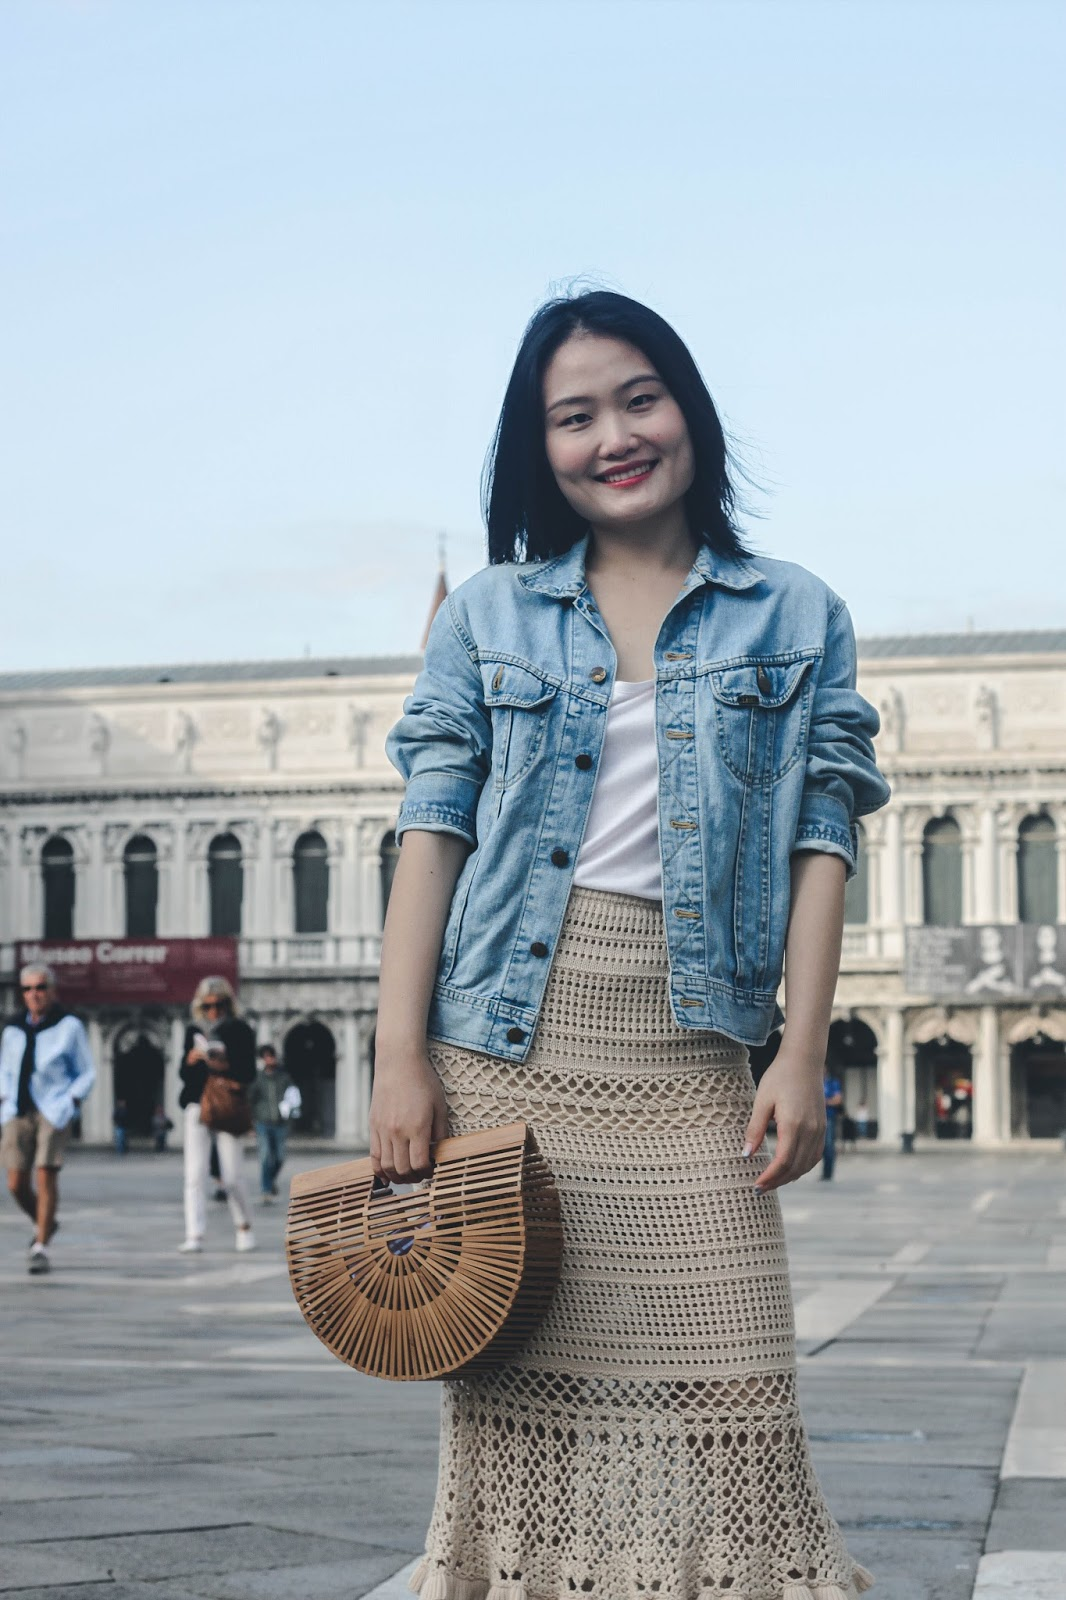 singapore blogger stylist style street photography photographer venice holiday europe look book fashion ootd wiwt bloglovin